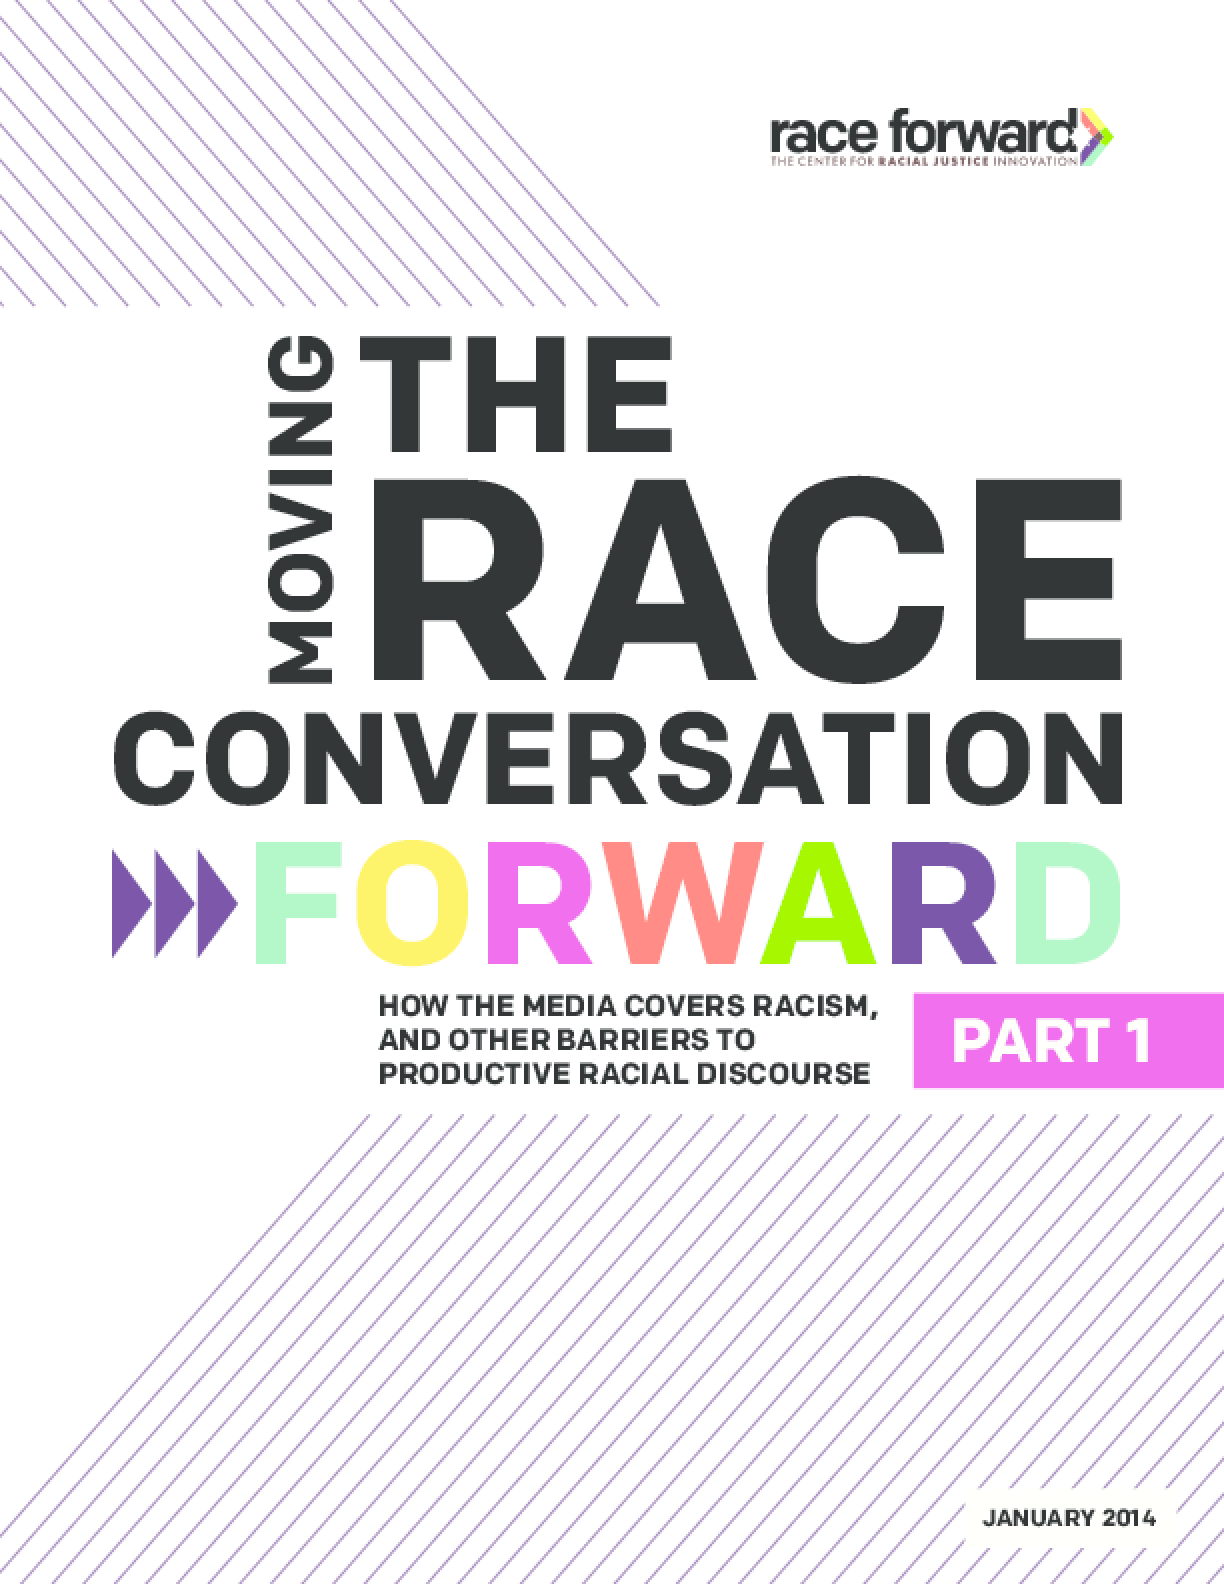 Moving the Race Conversation Forward: How the Media Covers Racism, and Other Barriers to Productive Racial Discourse- Pt. 1